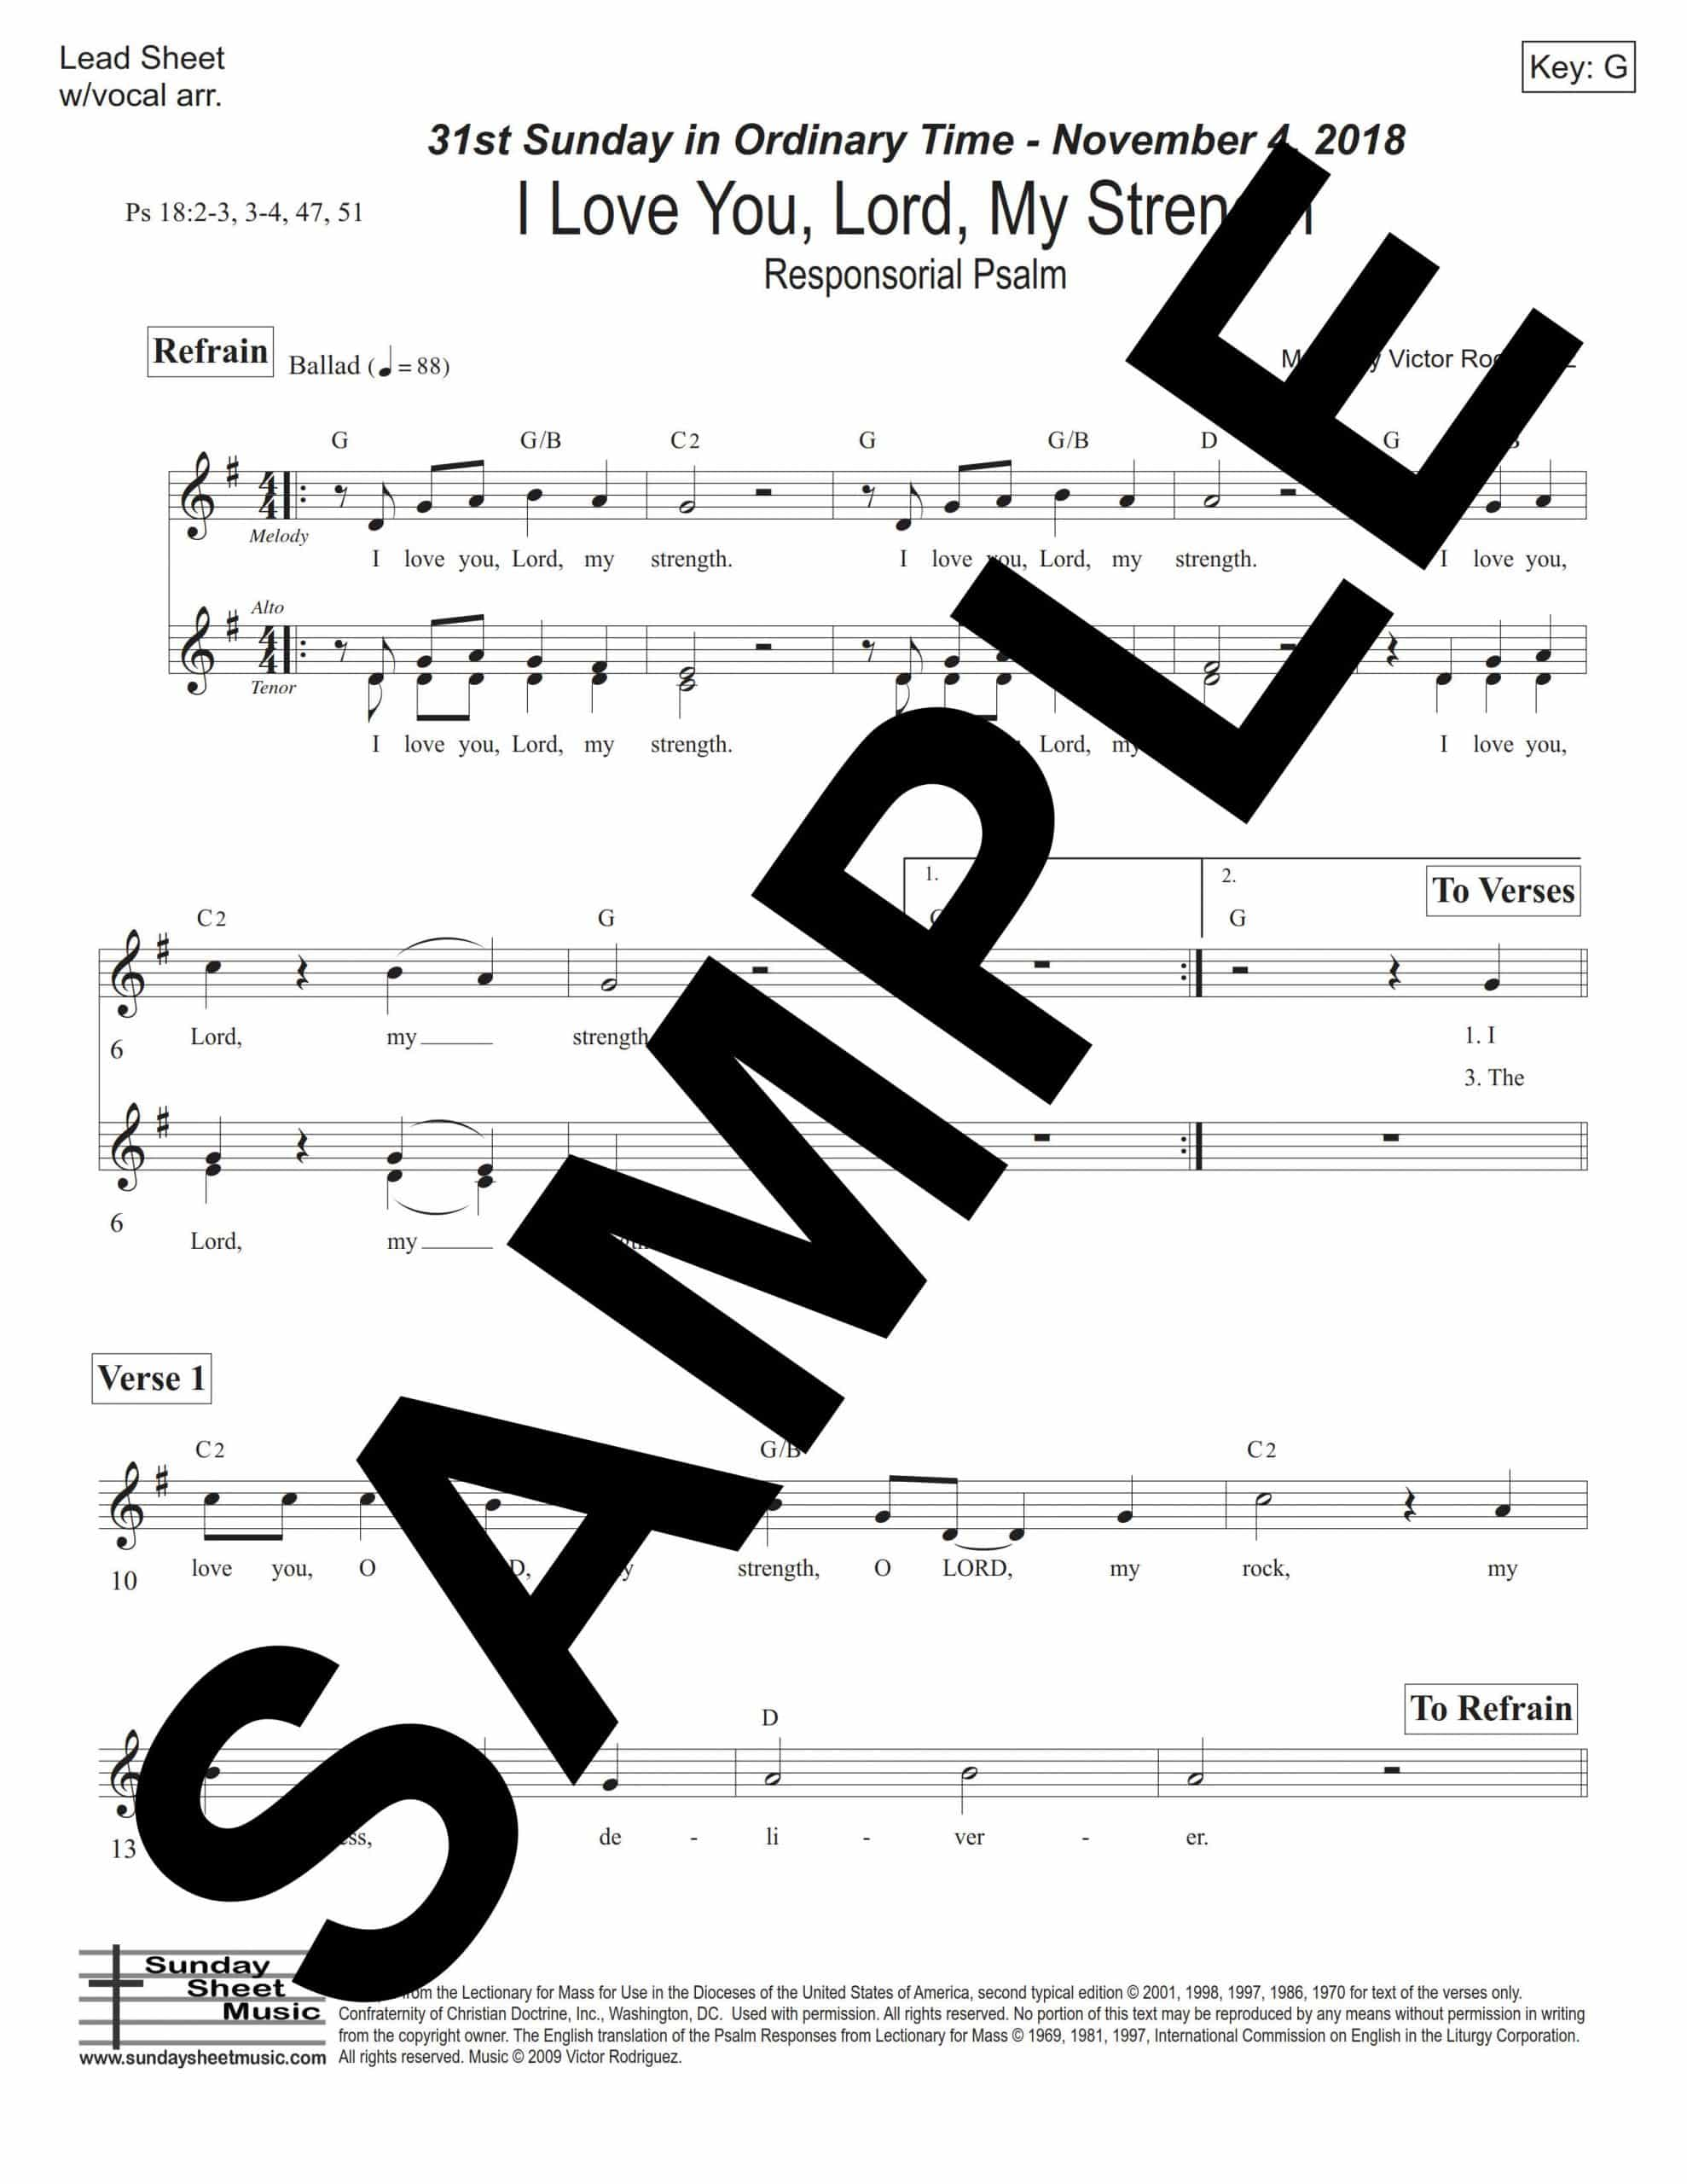 31st Sunday I Love You Lord My Strength Ps 18 Sample Lead Sheet scaled